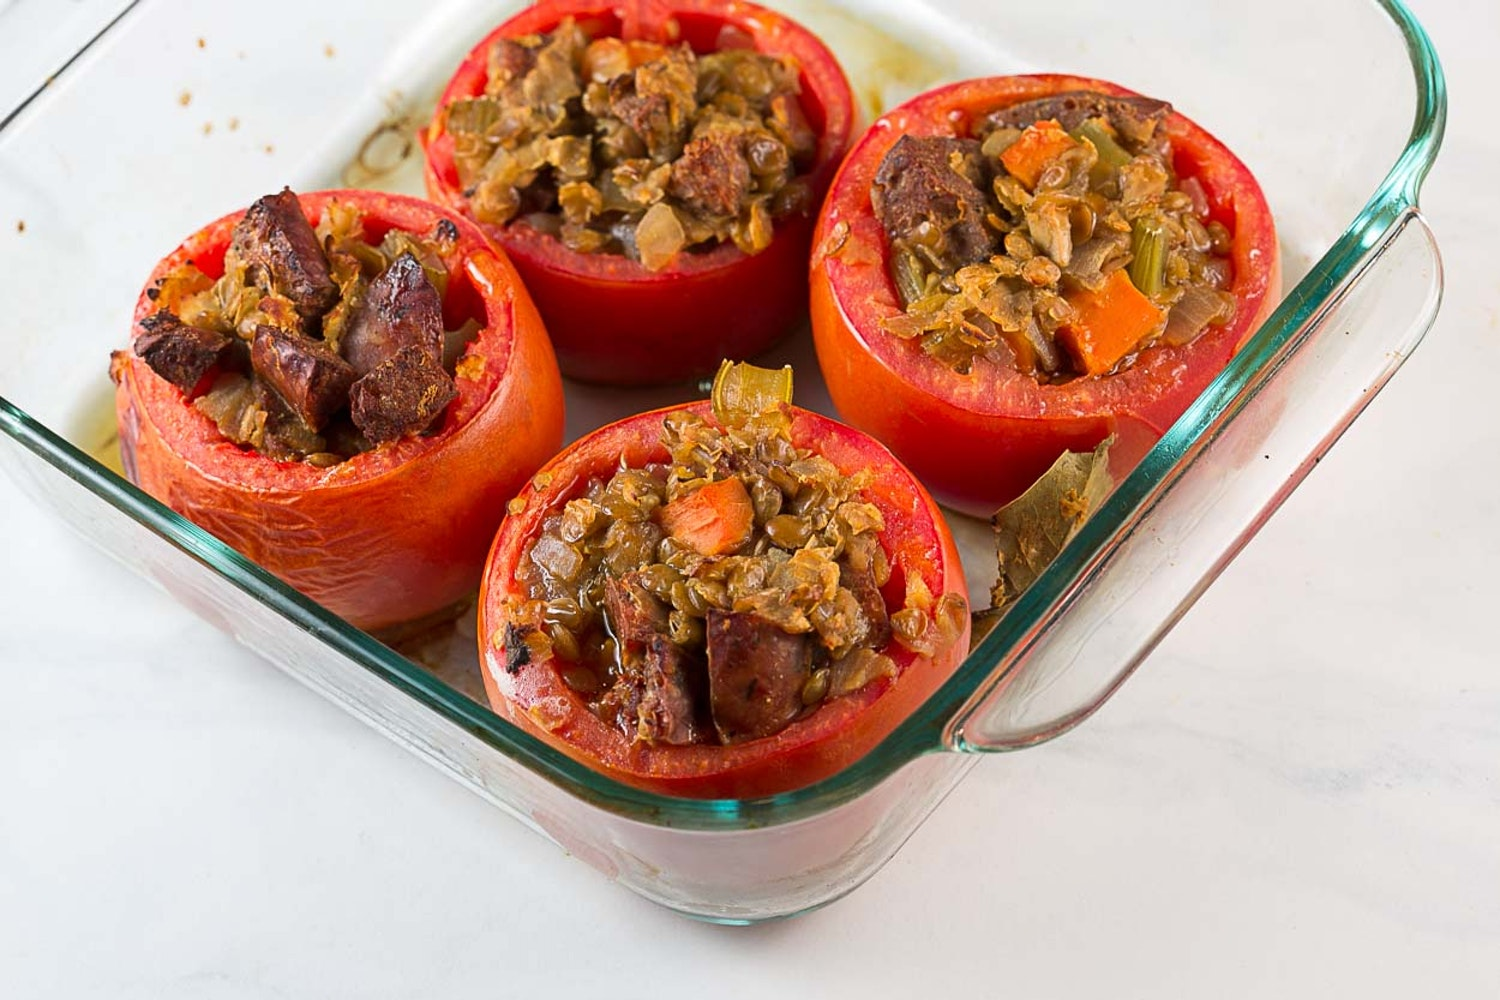 20131103 lentil sausage stuffed peppers 1.jpg?ixlib=rails 2.1